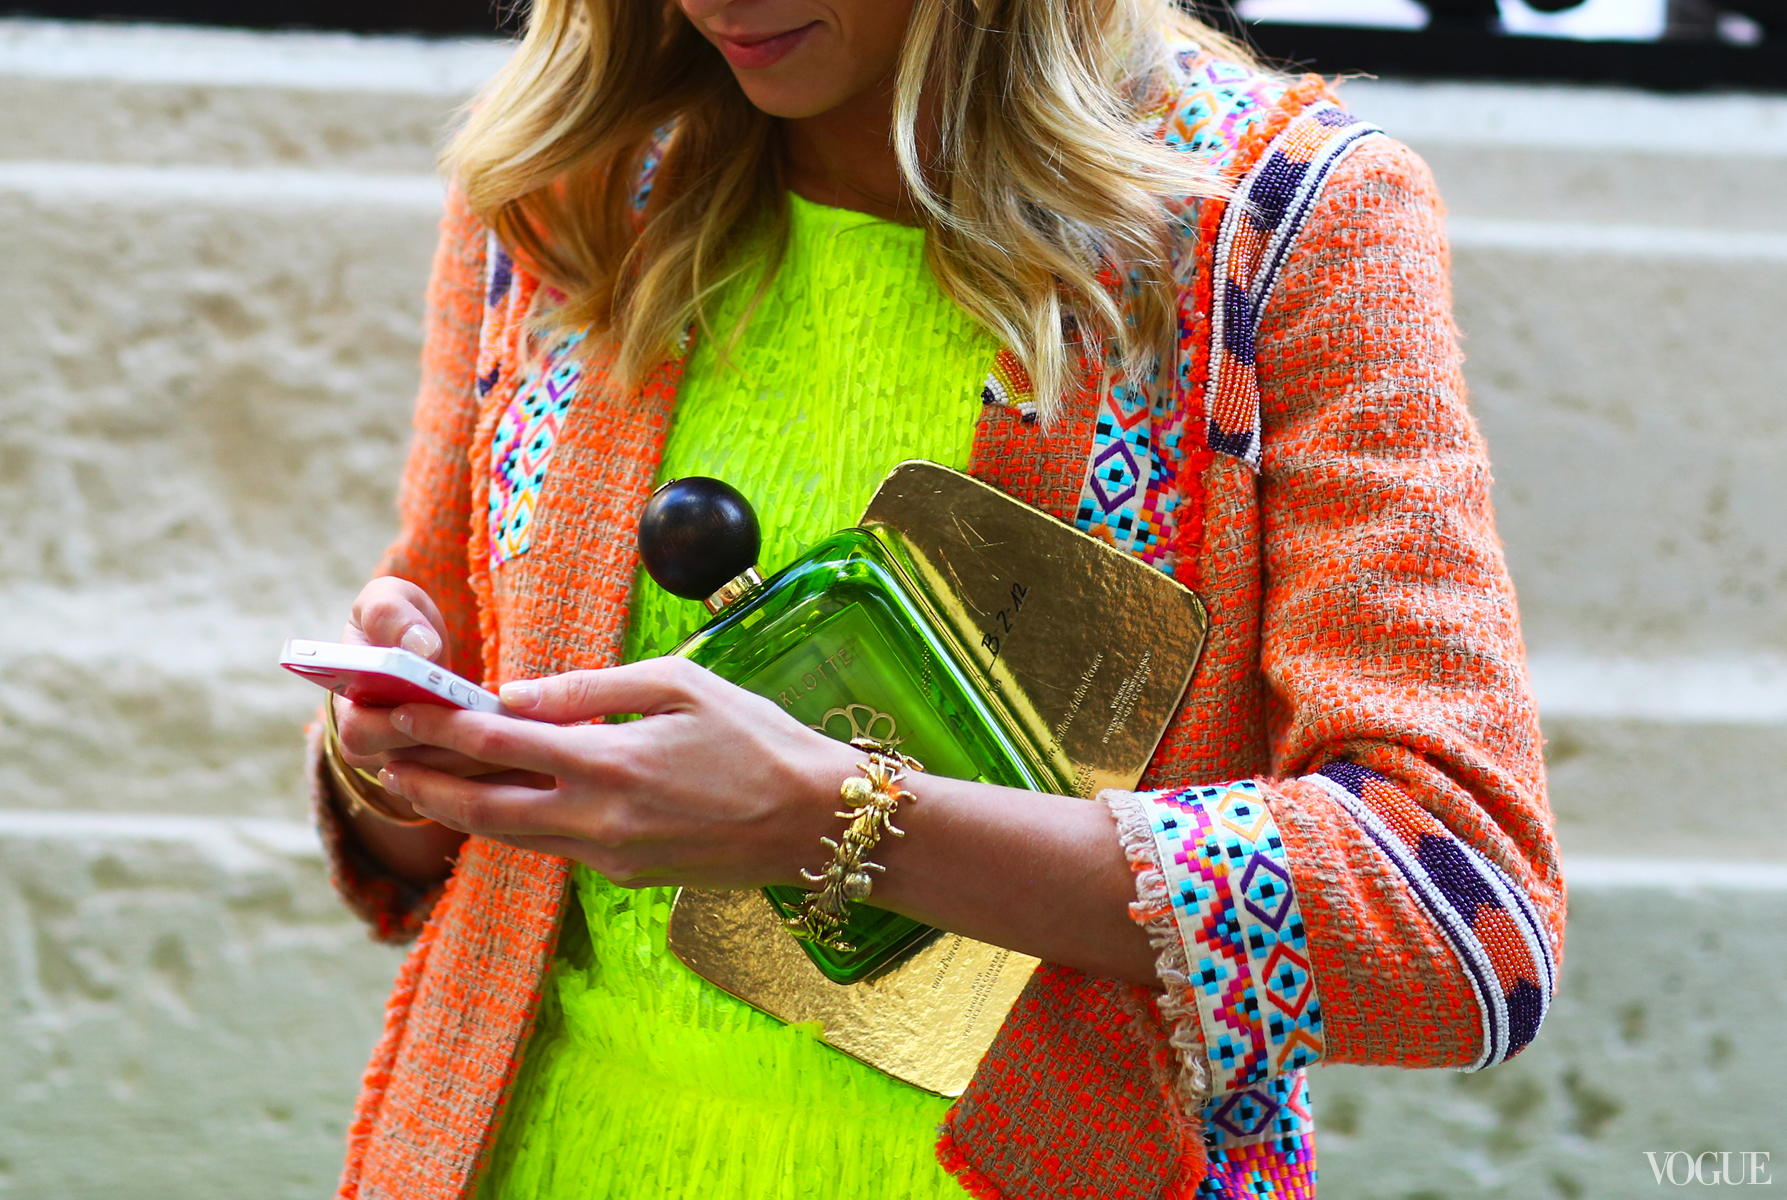 neon-trend-fashion-week-couture-street-style